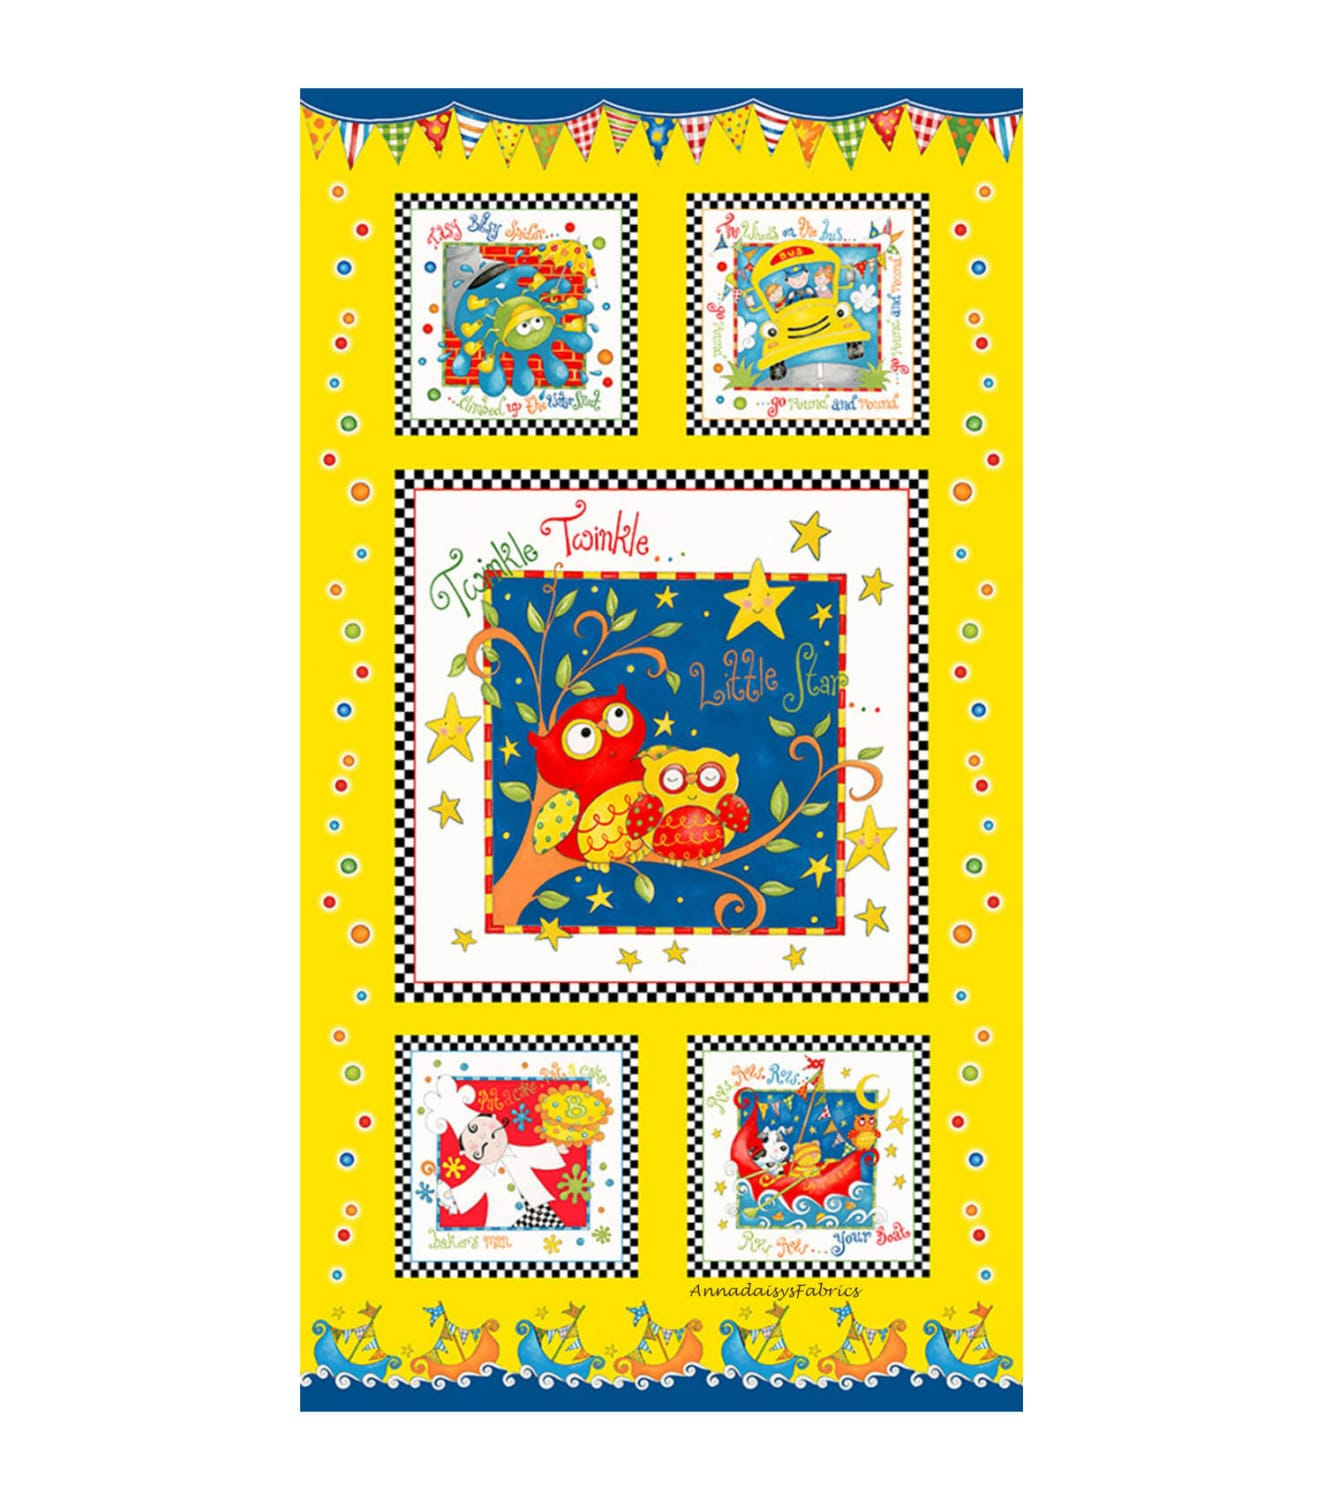 Nursery rhyme baby quilt fabric panel rhyme time 6155p for Nursery fabric sale